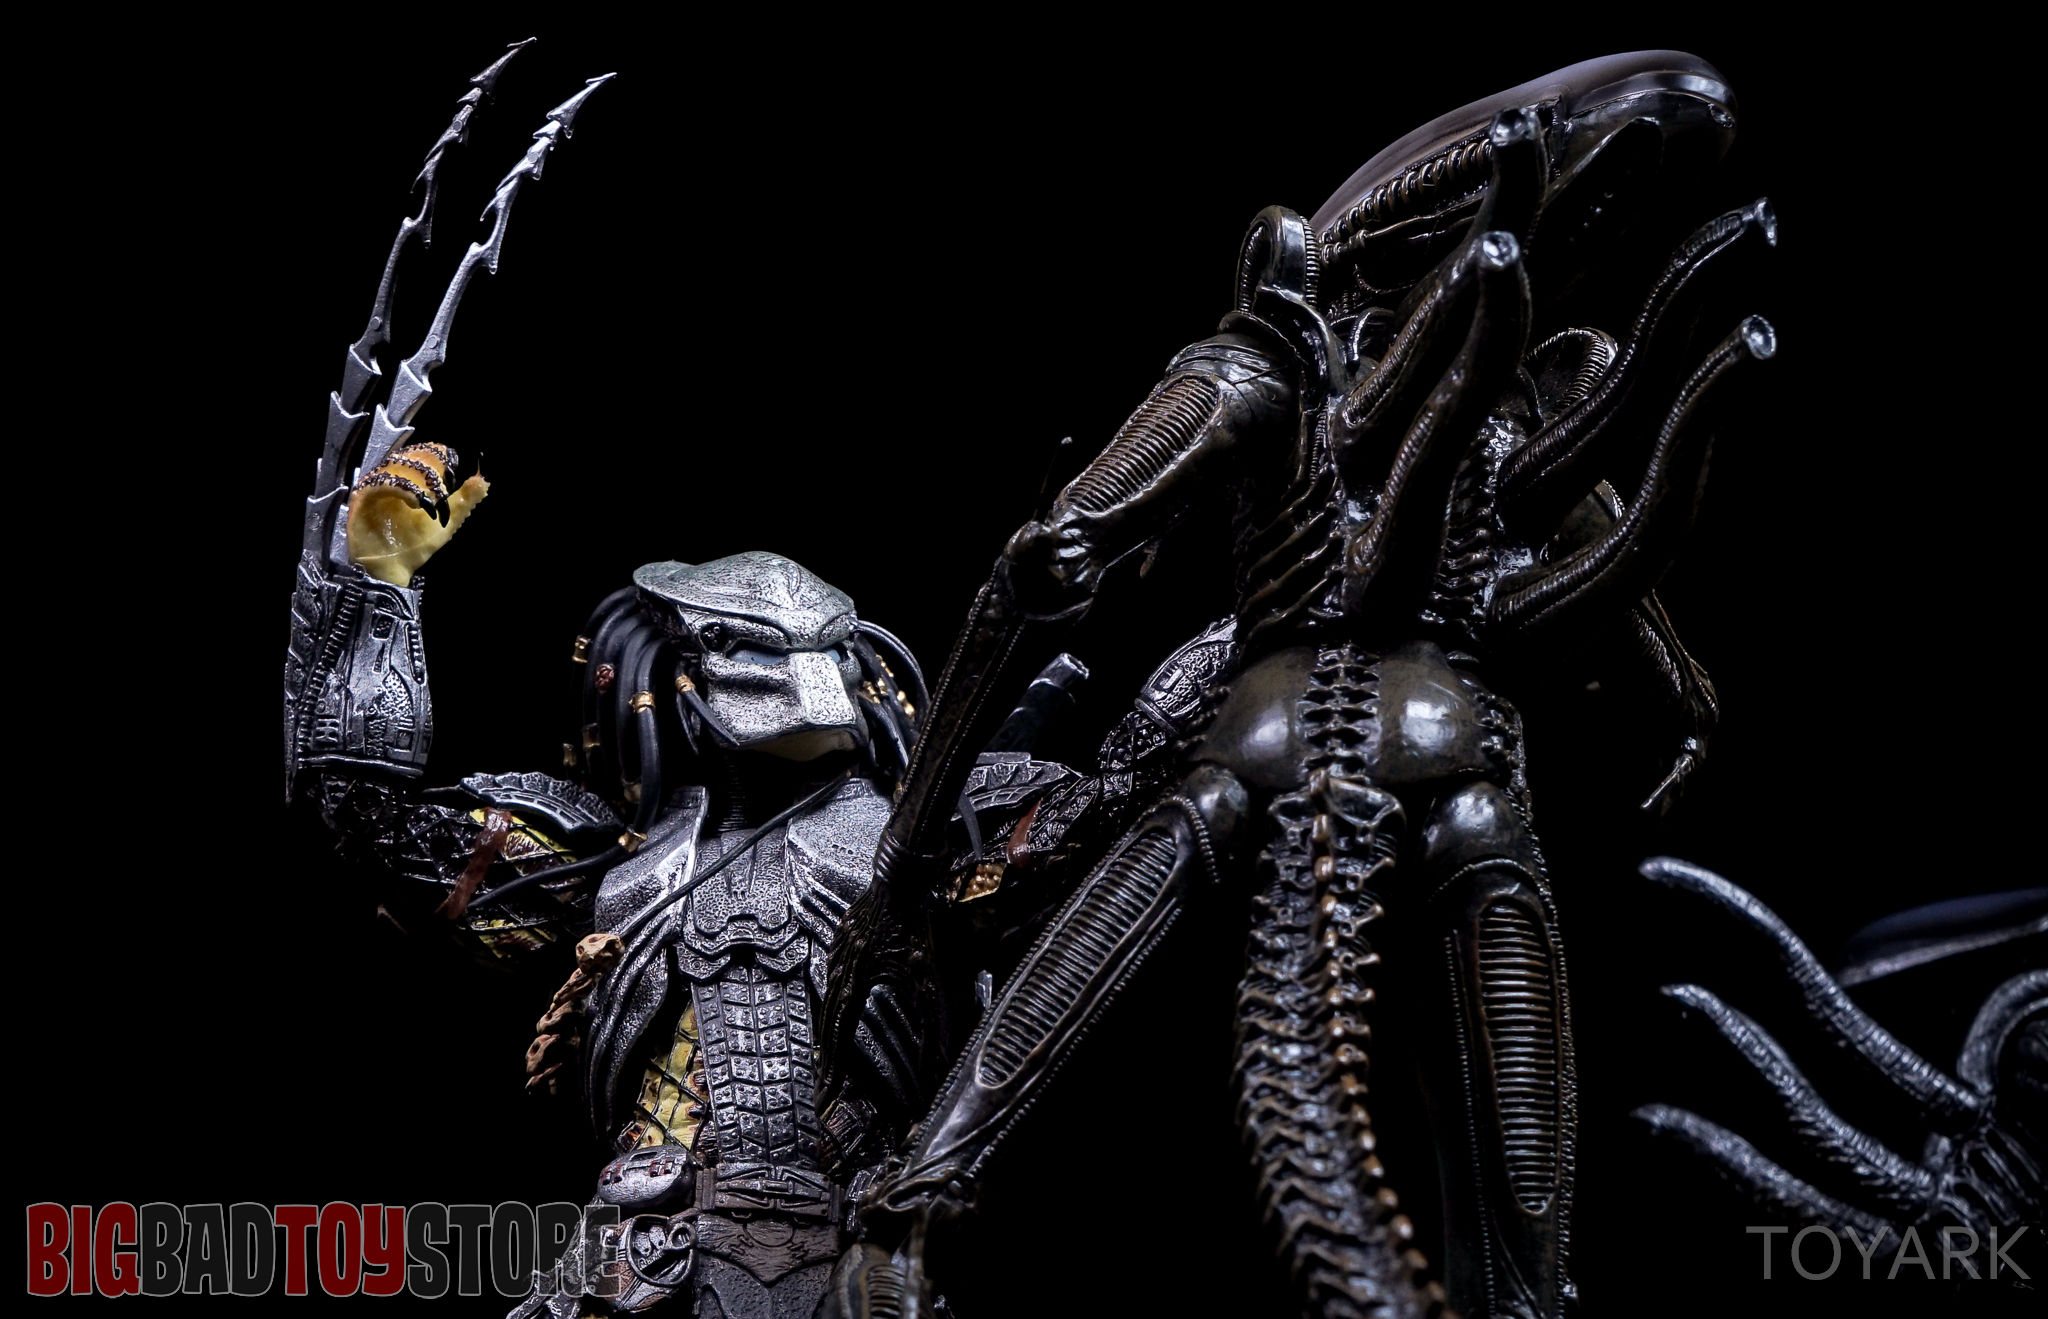 http://news.toyark.com/wp-content/uploads/sites/4/2016/05/NECA-Predator-Series-15-AvP-090.jpg